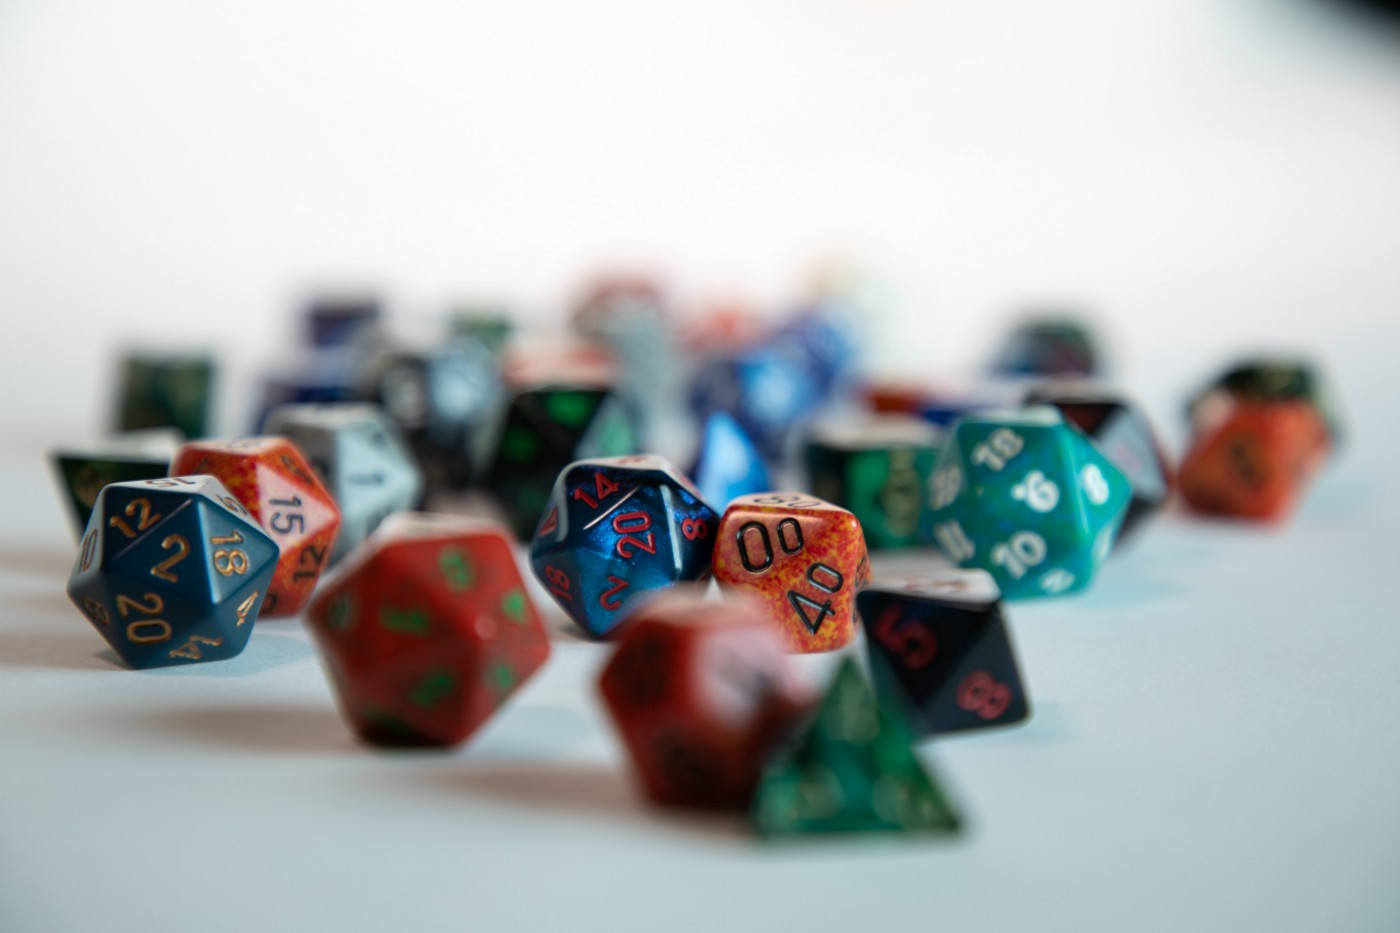 Photo of D&D dice taken by Jim Zavala